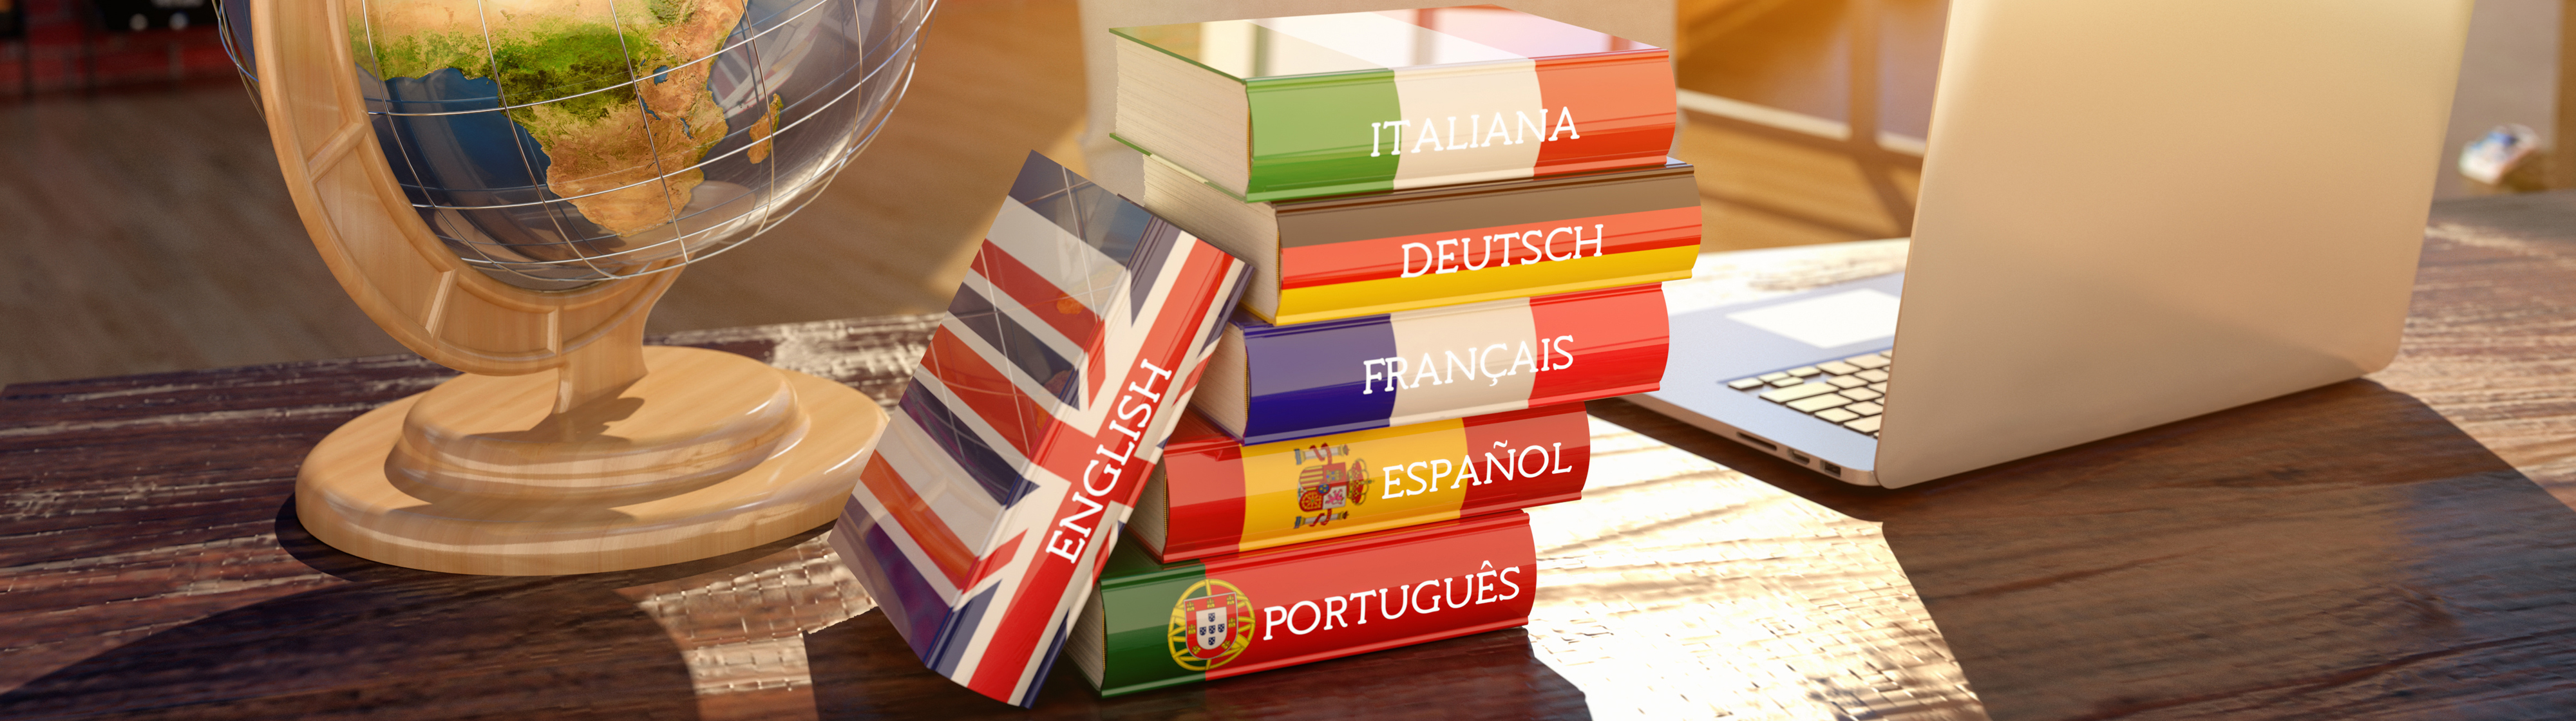 Stacks of books in different languages